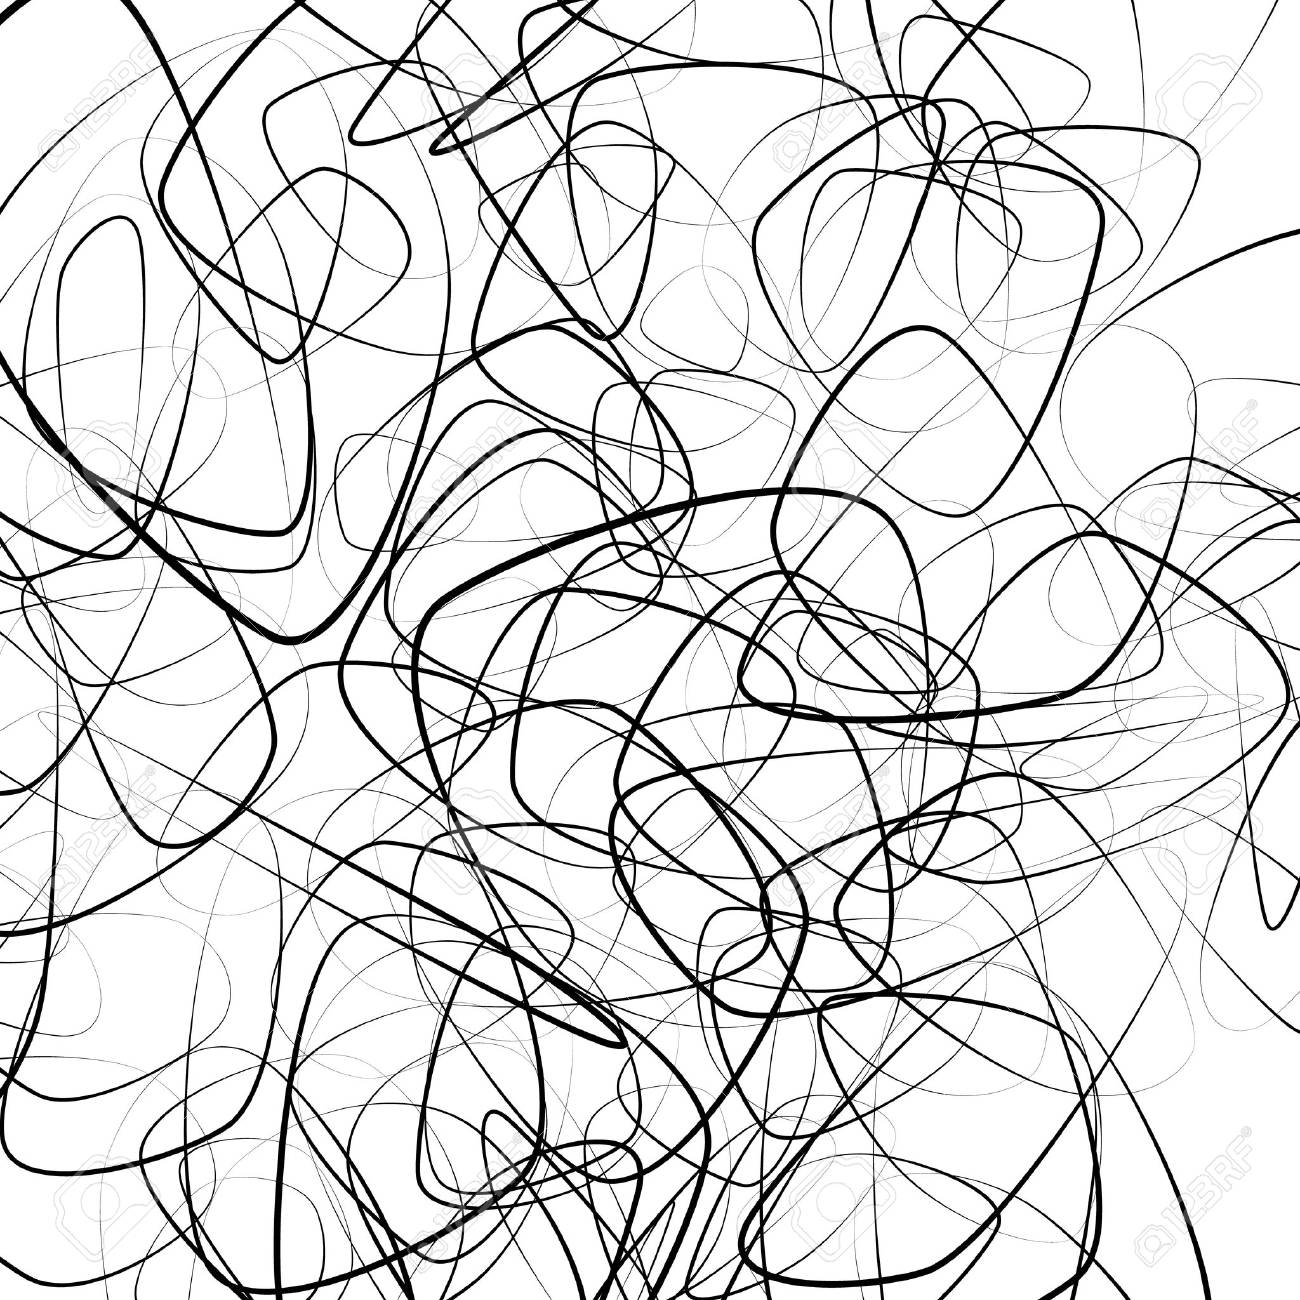 Random squiggly, chaotic lines. Artistic monochrome image. - 56394214